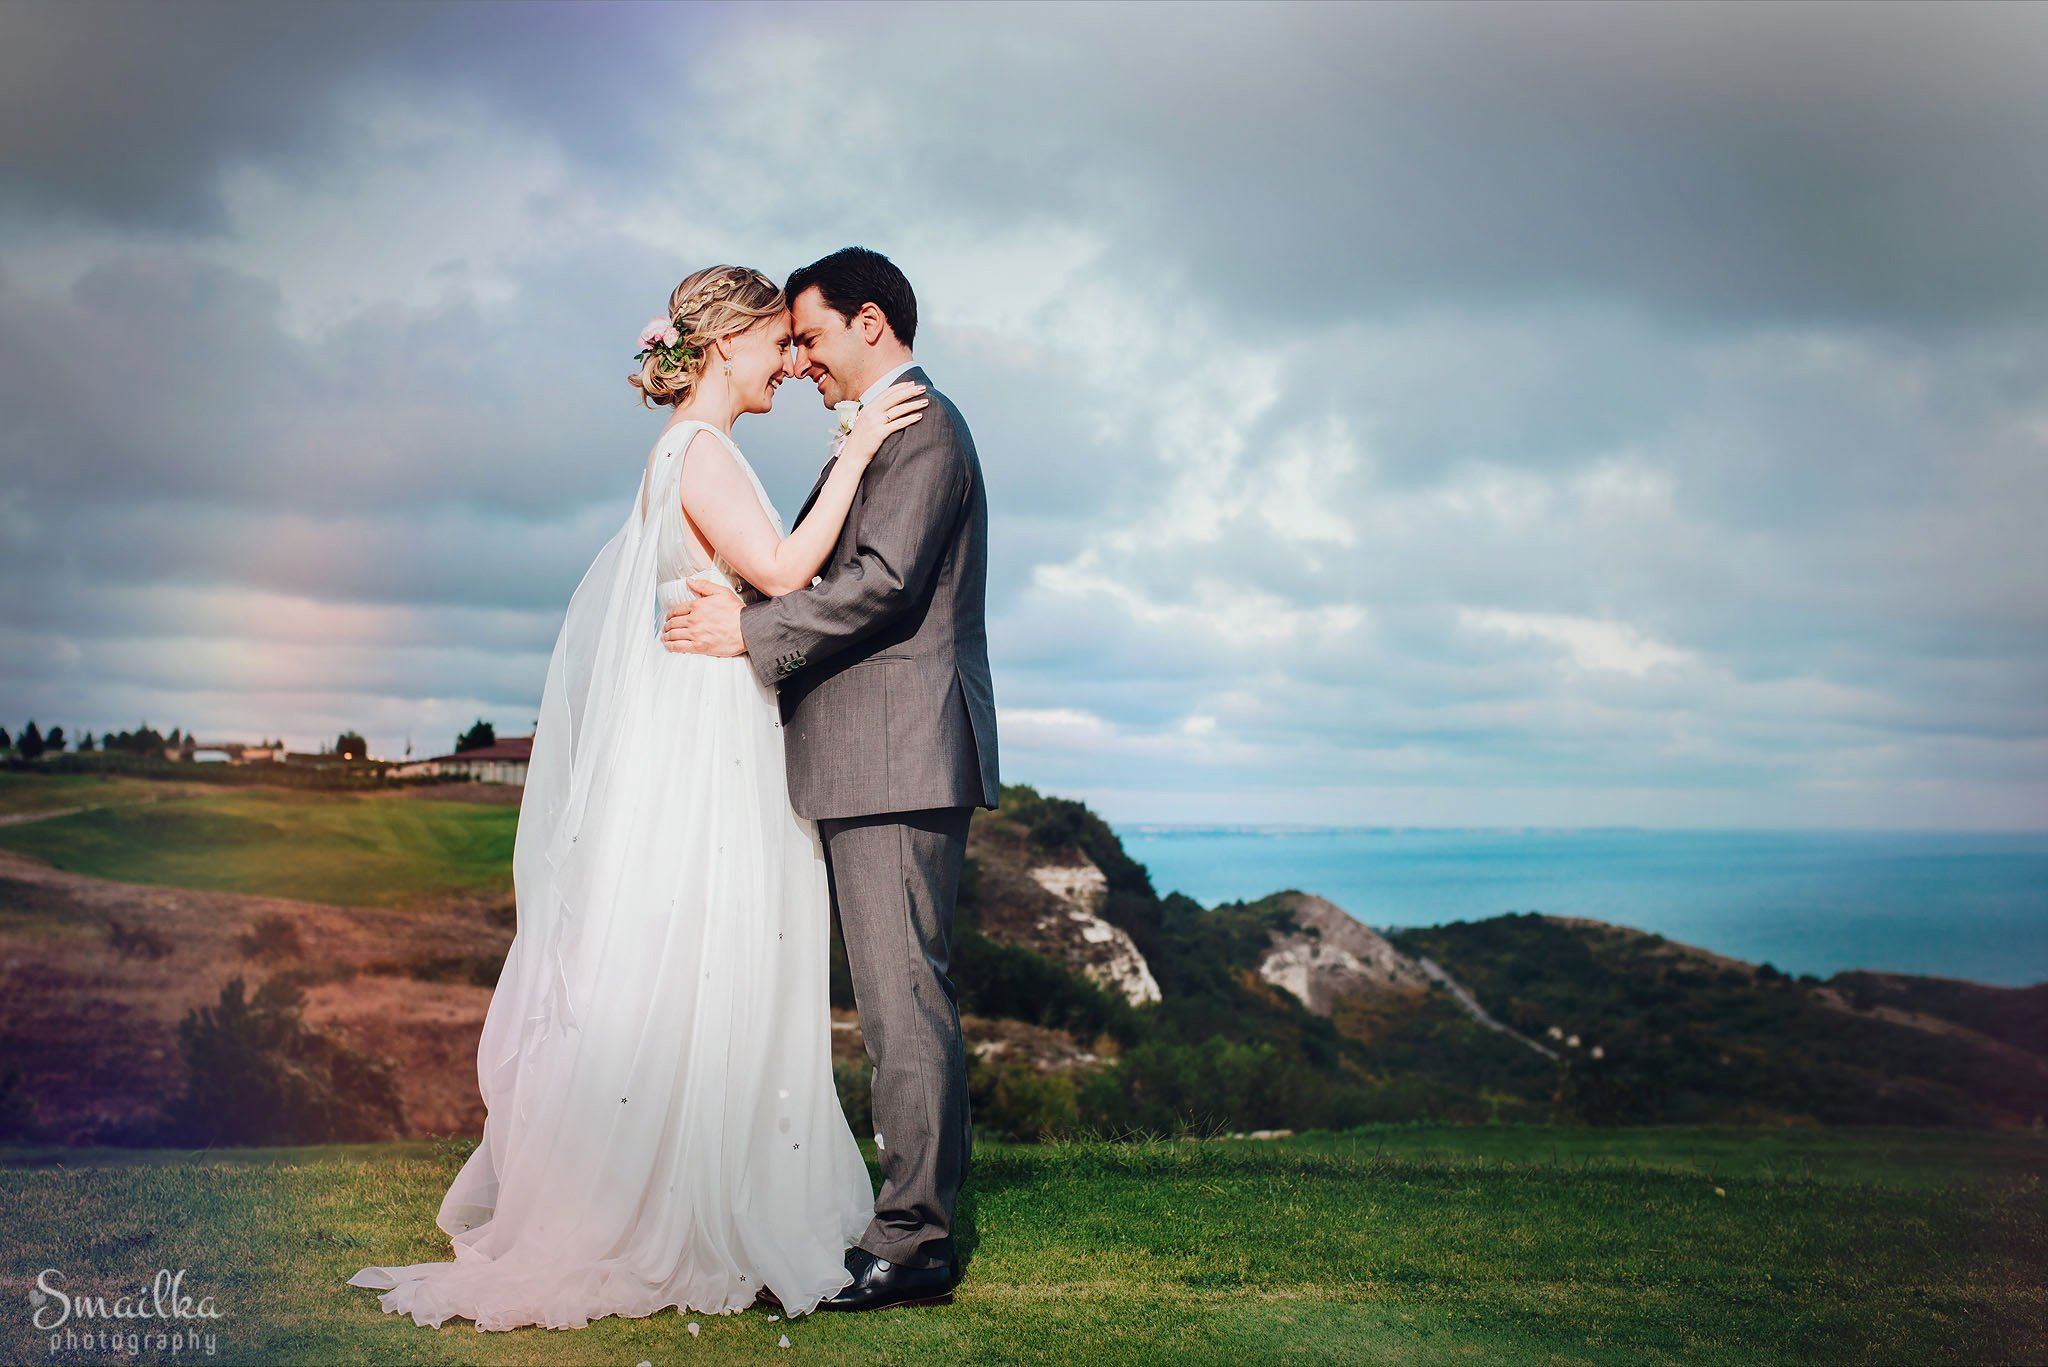 Bride and groom wedding photo session at the fields of Black Sea Rama